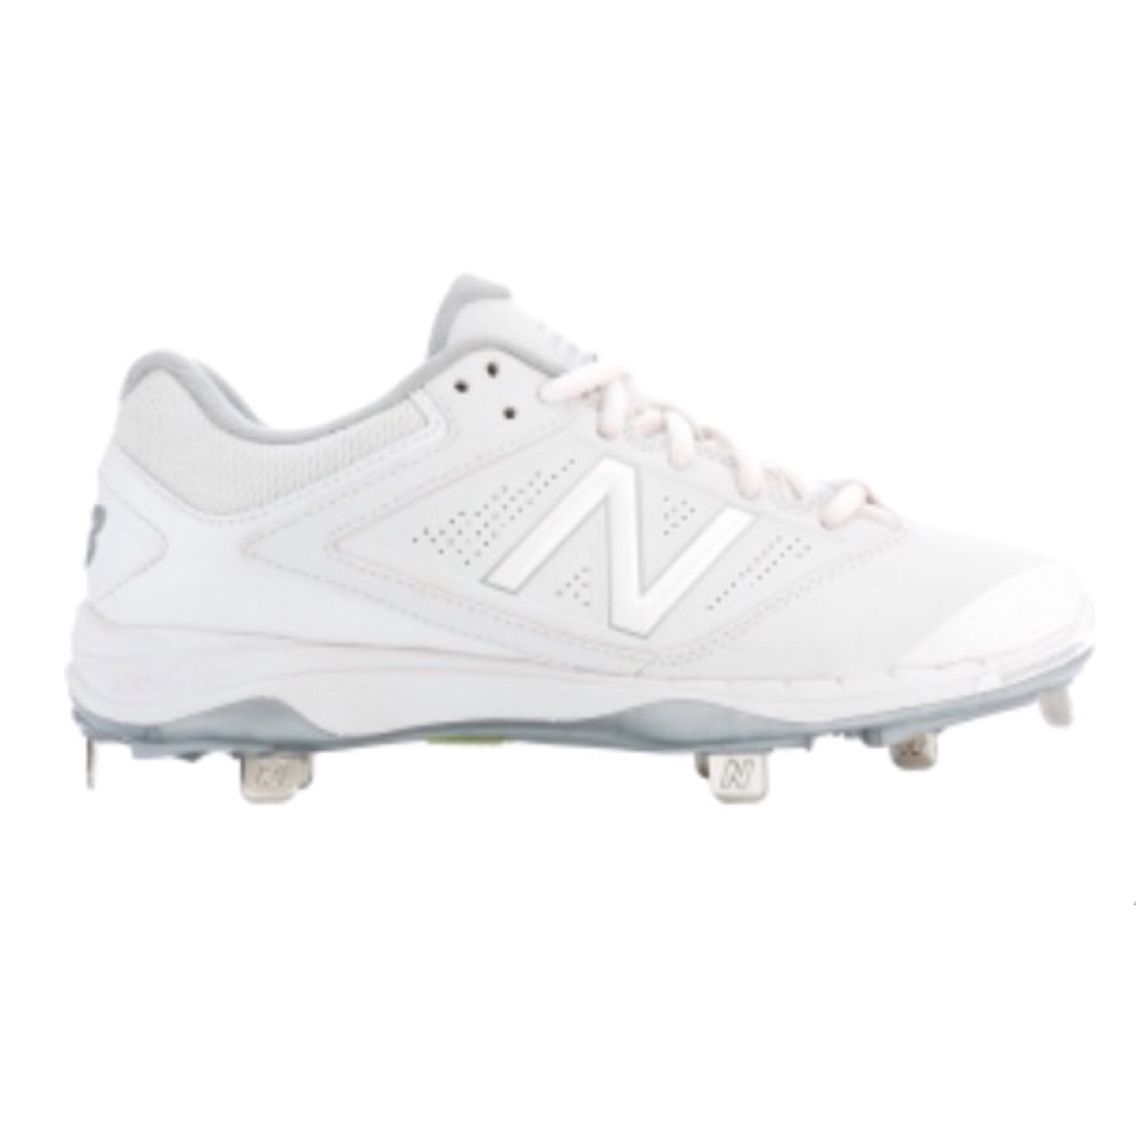 wholesale dealer 031b9 efa54 White metal softball cleats